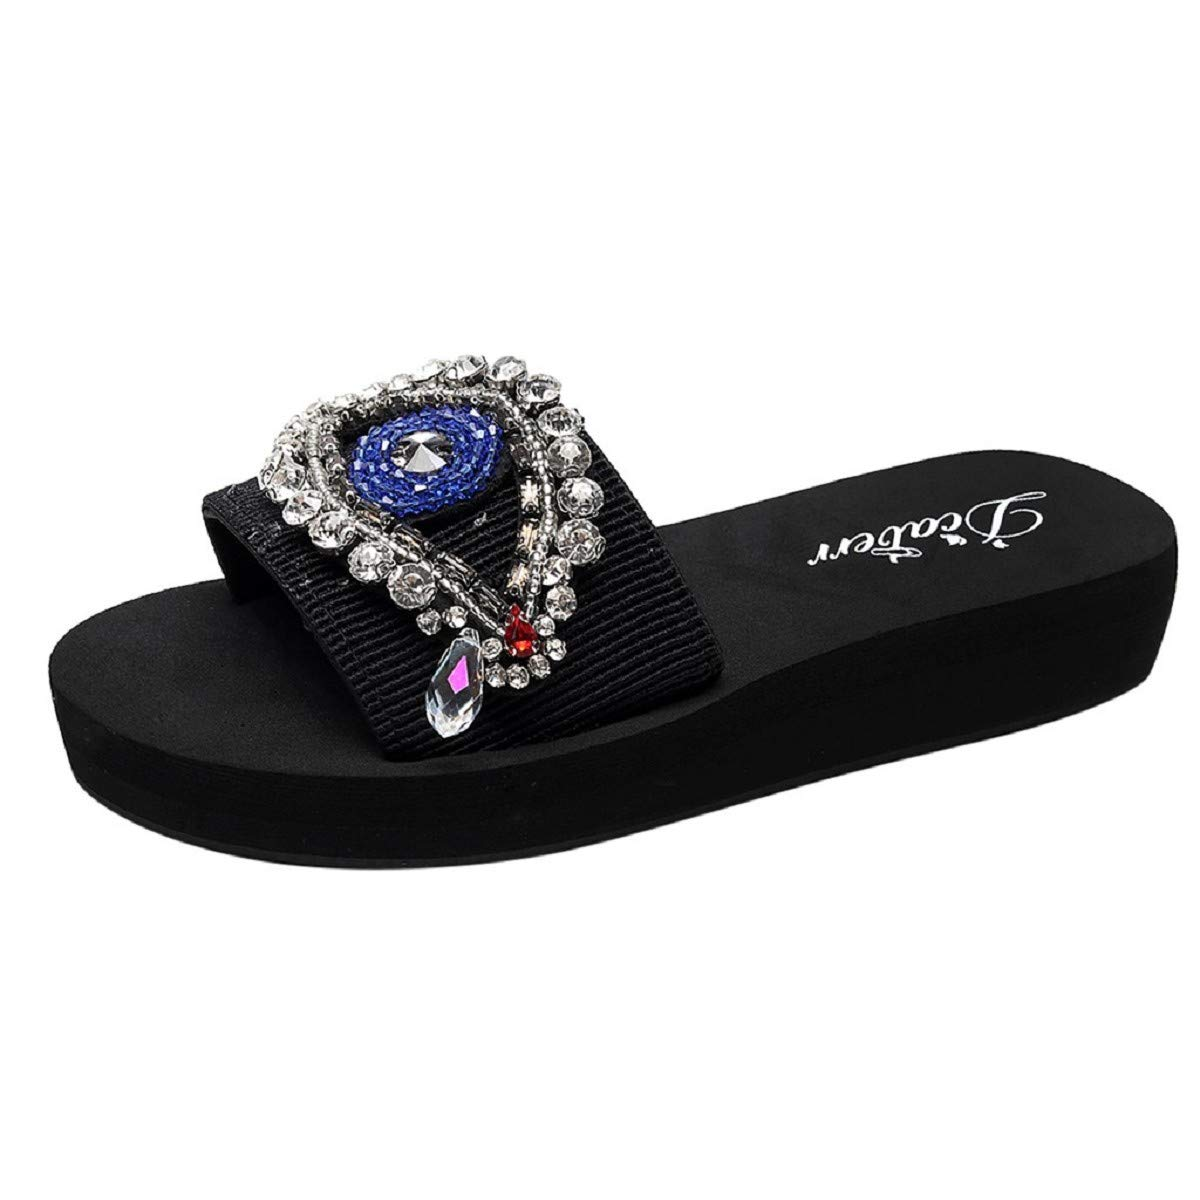 OTINICE Women Sandals Hand-Made Eyes Pattern Crystal Wedge Non-Slip Flip Flops Slippers Beach Shoes Black